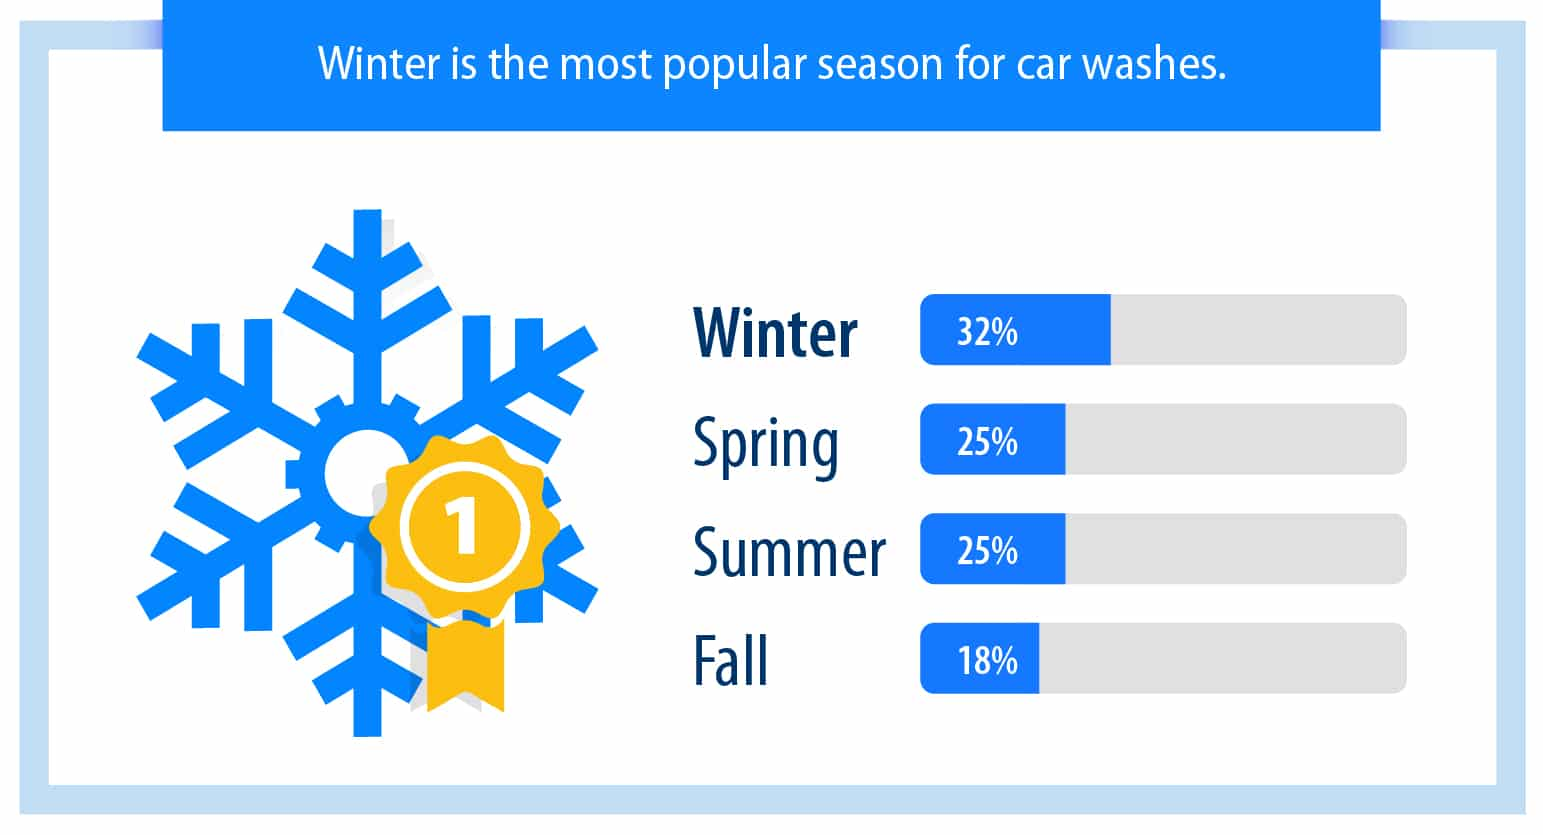 winter is the most popular season for car washes